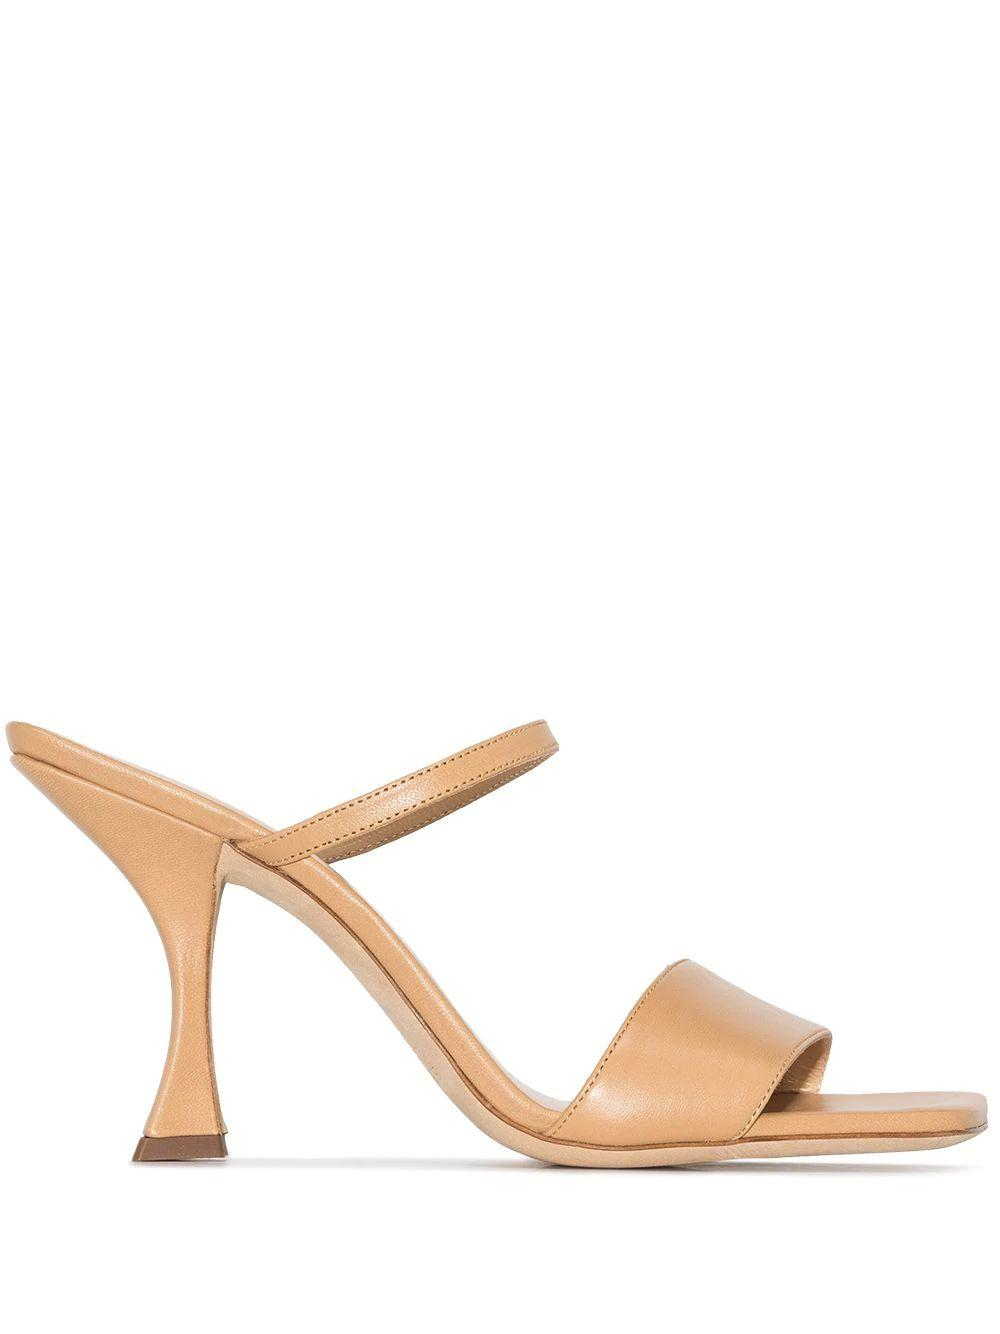 Nayla Leather Sandal